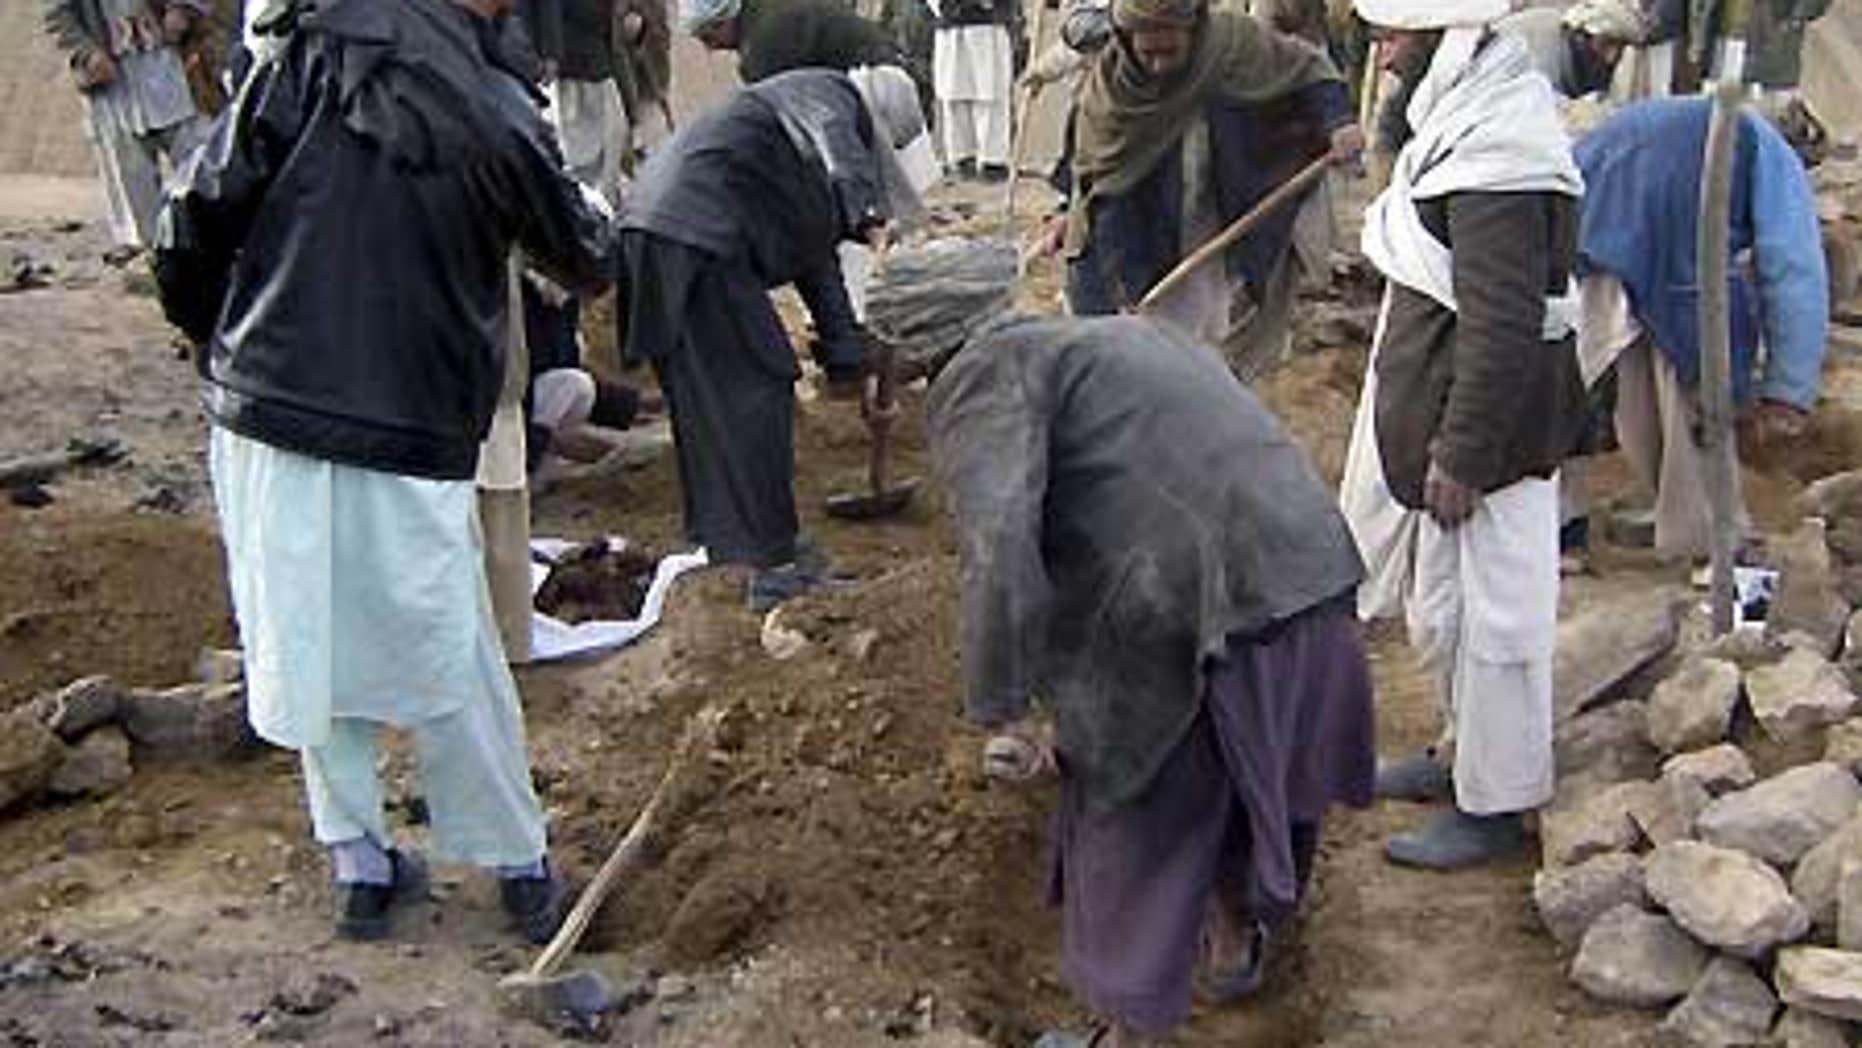 Feb. 17: Afghans dig graves for the victims who villagers said were killed in an airstrike, in Gozara district of Herat province, west of Kabul.